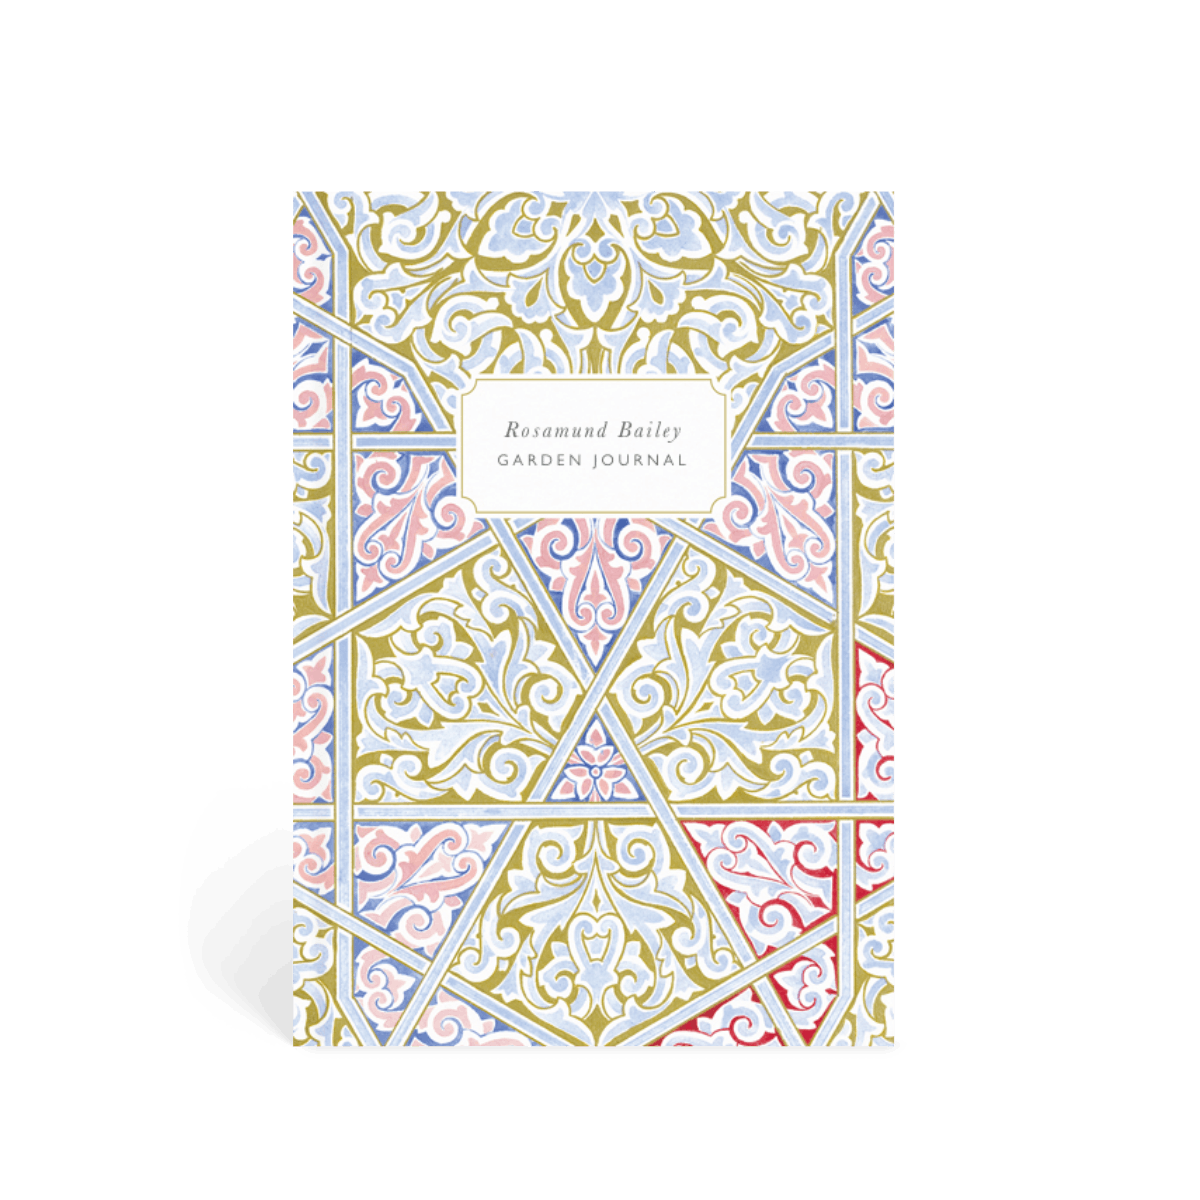 Https%3a%2f%2fwww.papier.com%2fproduct image%2f55264%2f25%2fpastel filigree 13275 front 1542299286.png?ixlib=rb 1.1